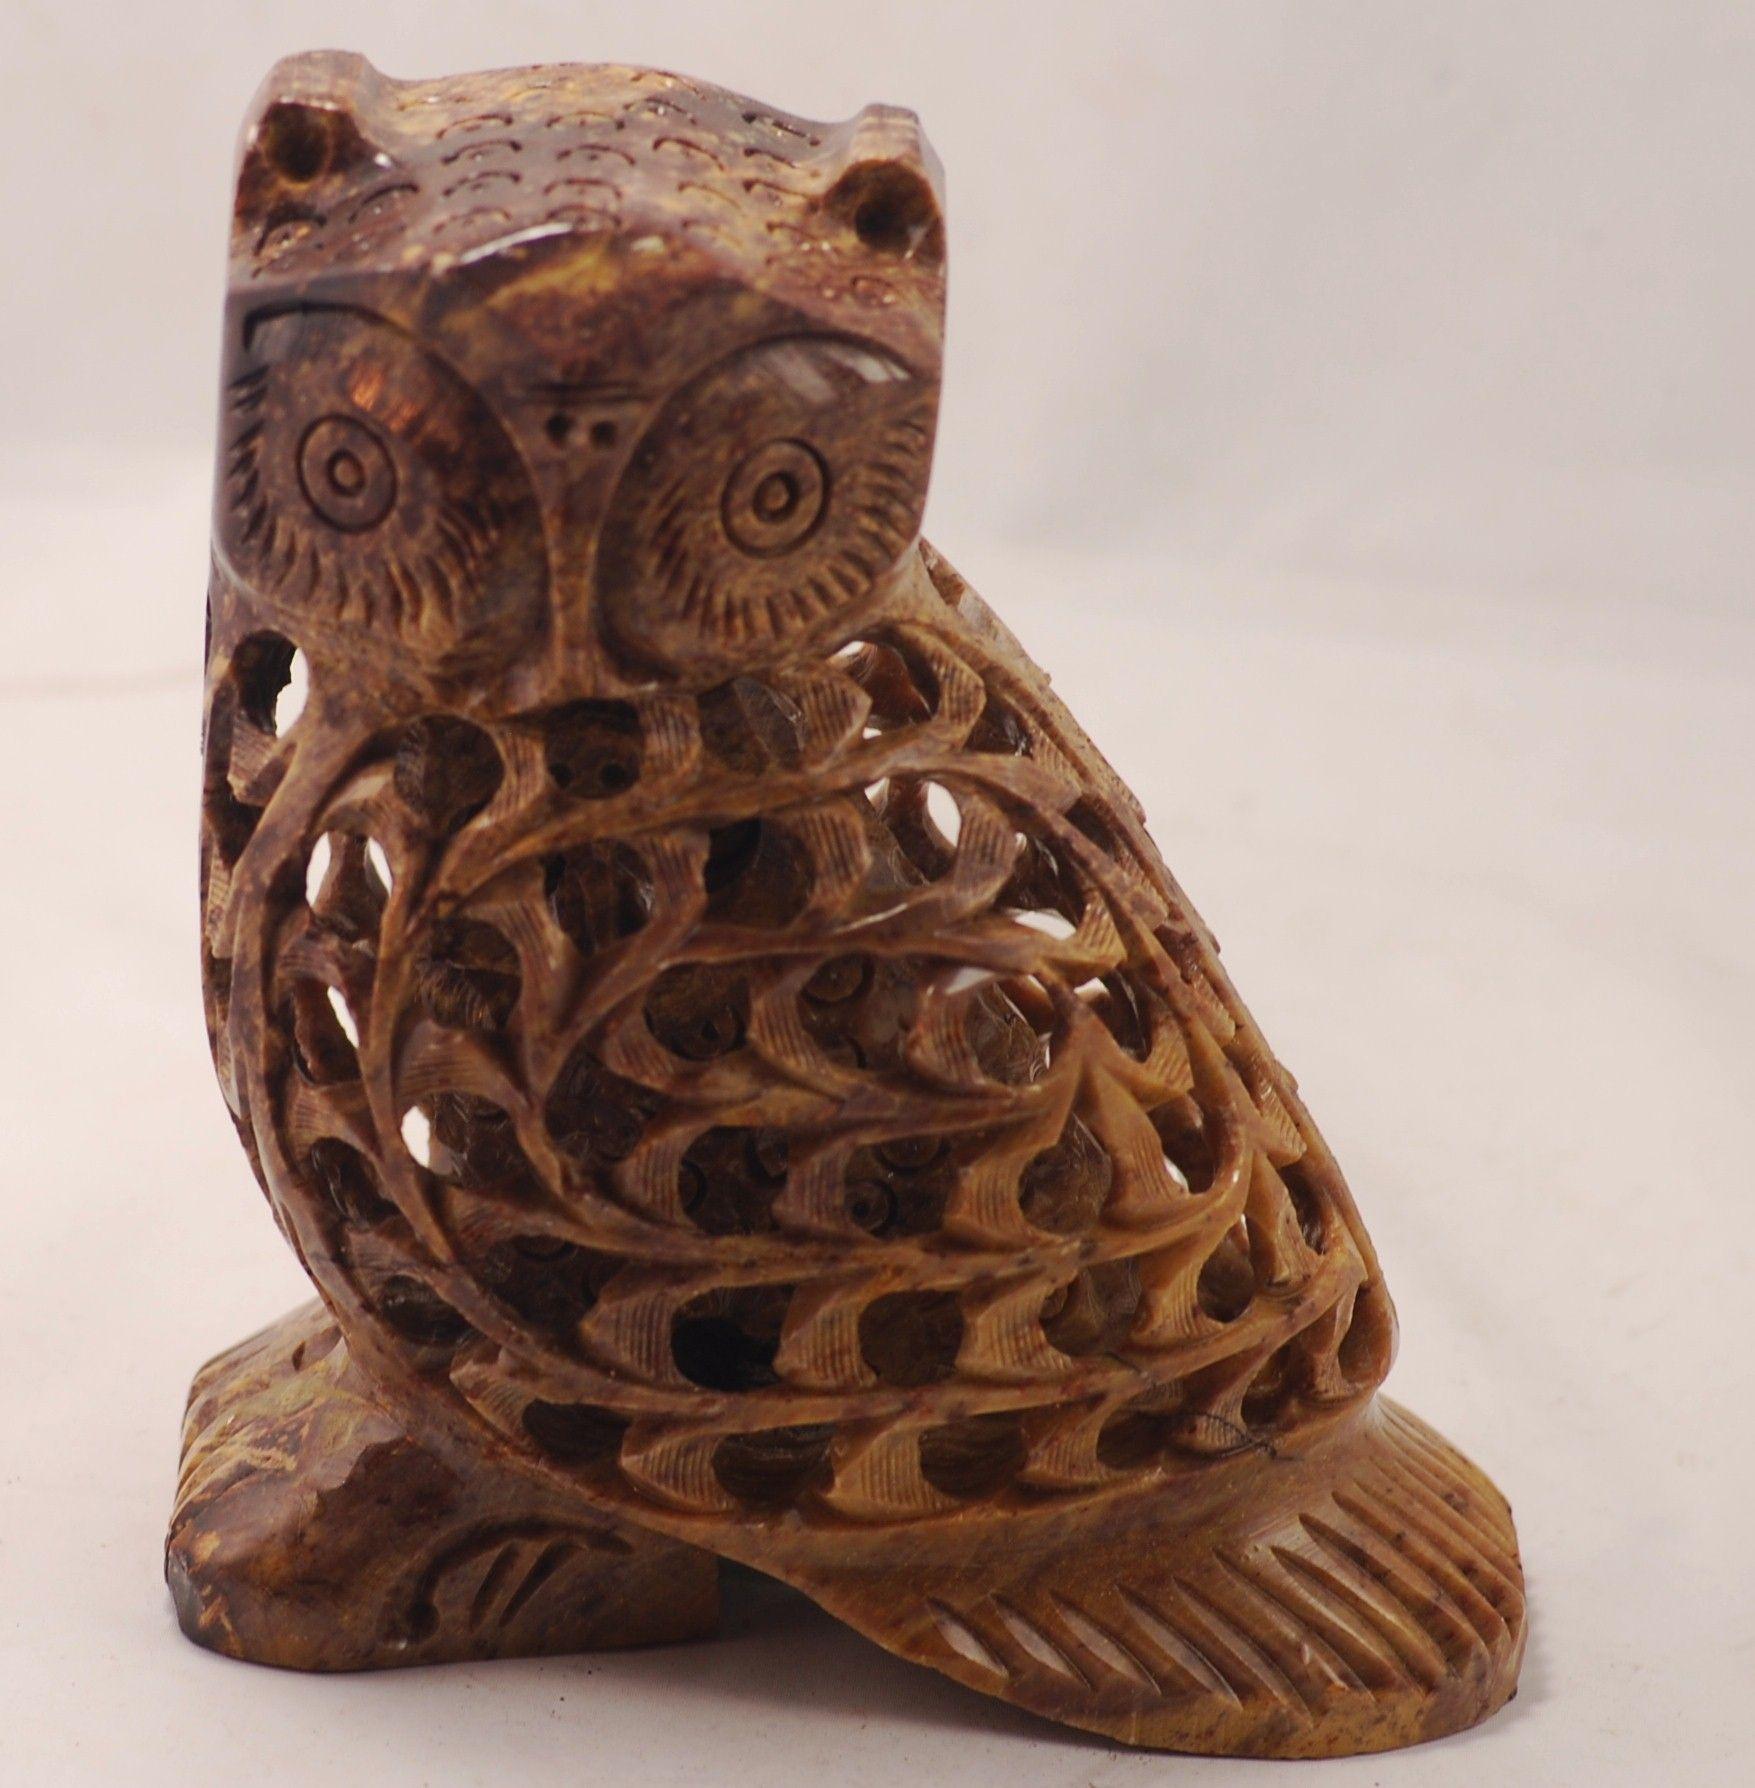 Soapstone Owl Carving with Smaller Owl Inside